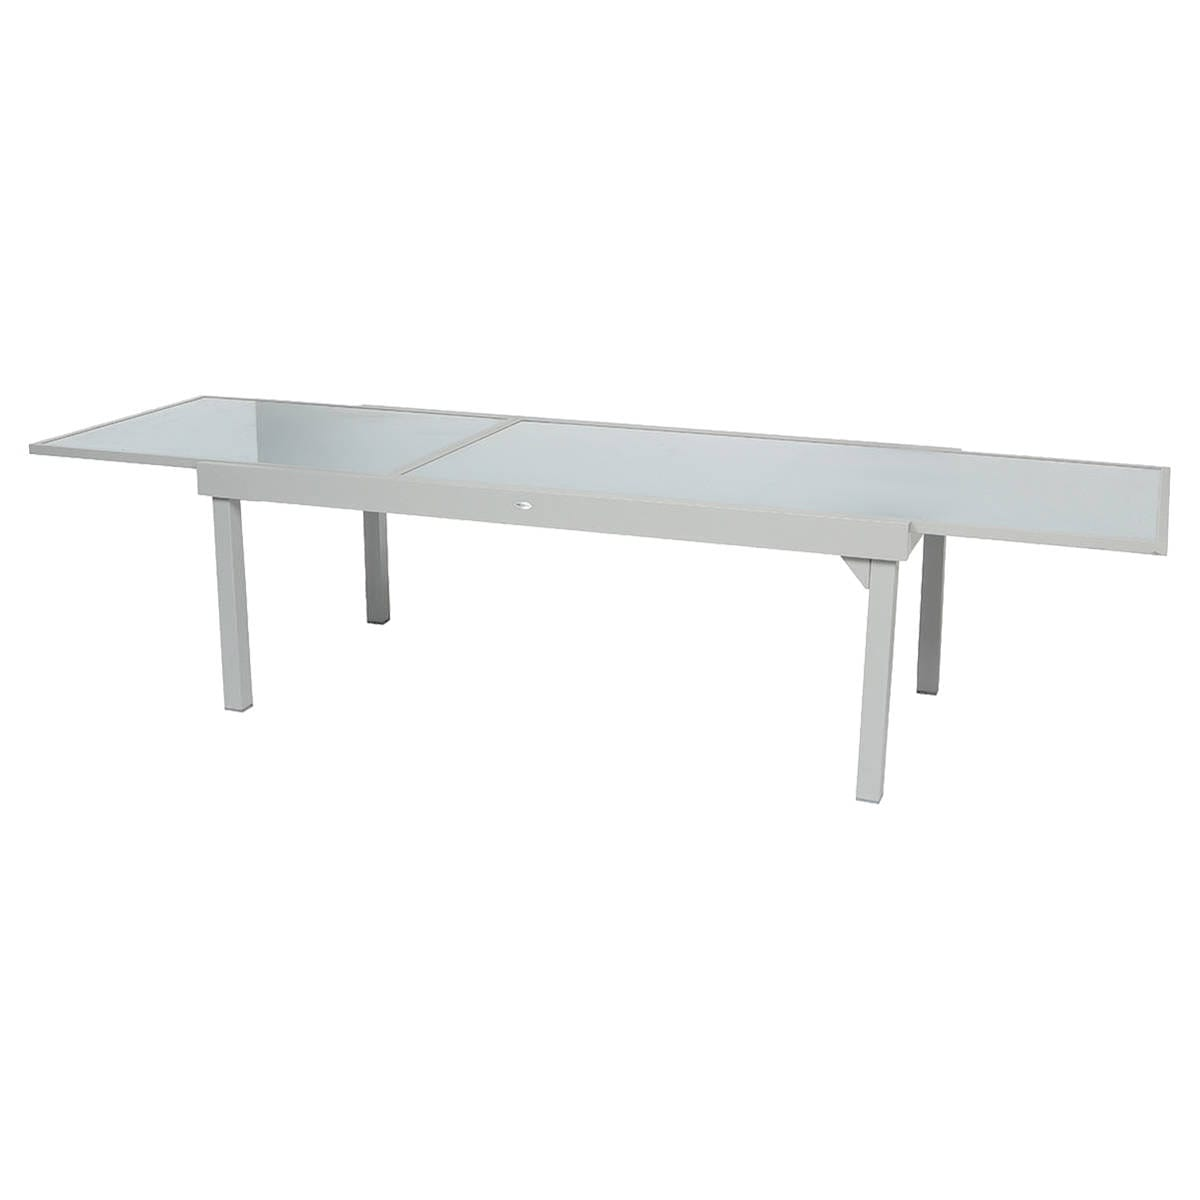 Table de jardin extensible Piazza Gris & Silver mat Hespéride 12 places